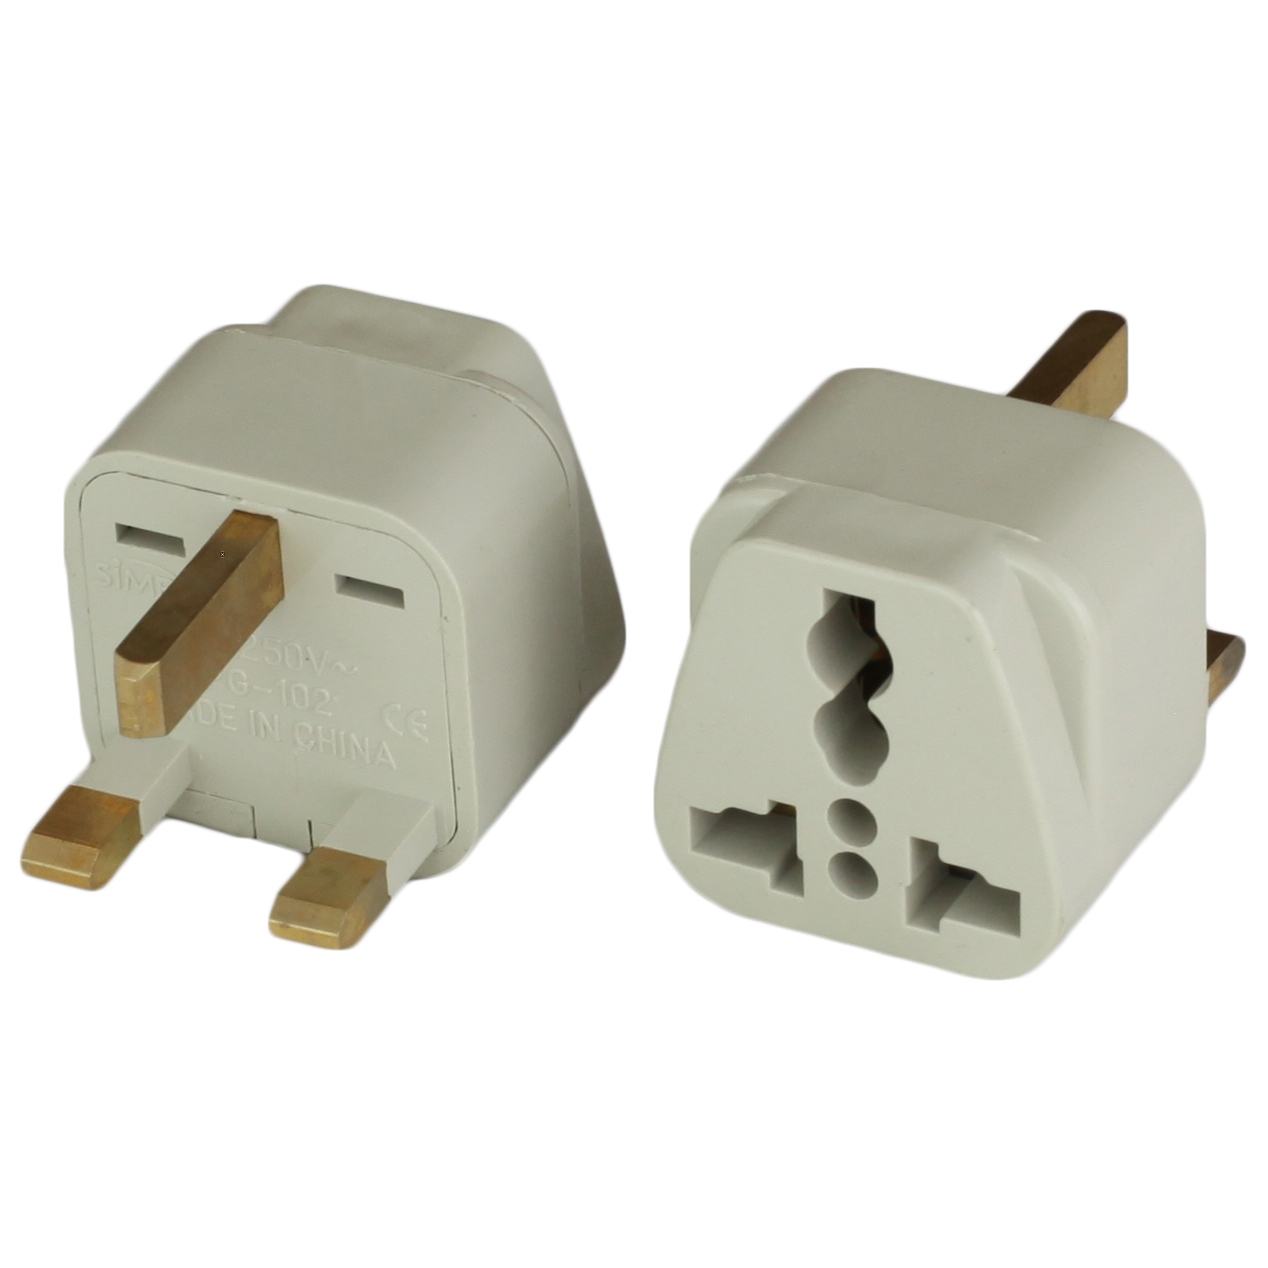 United Kingdom BS1363 Plug Adapters